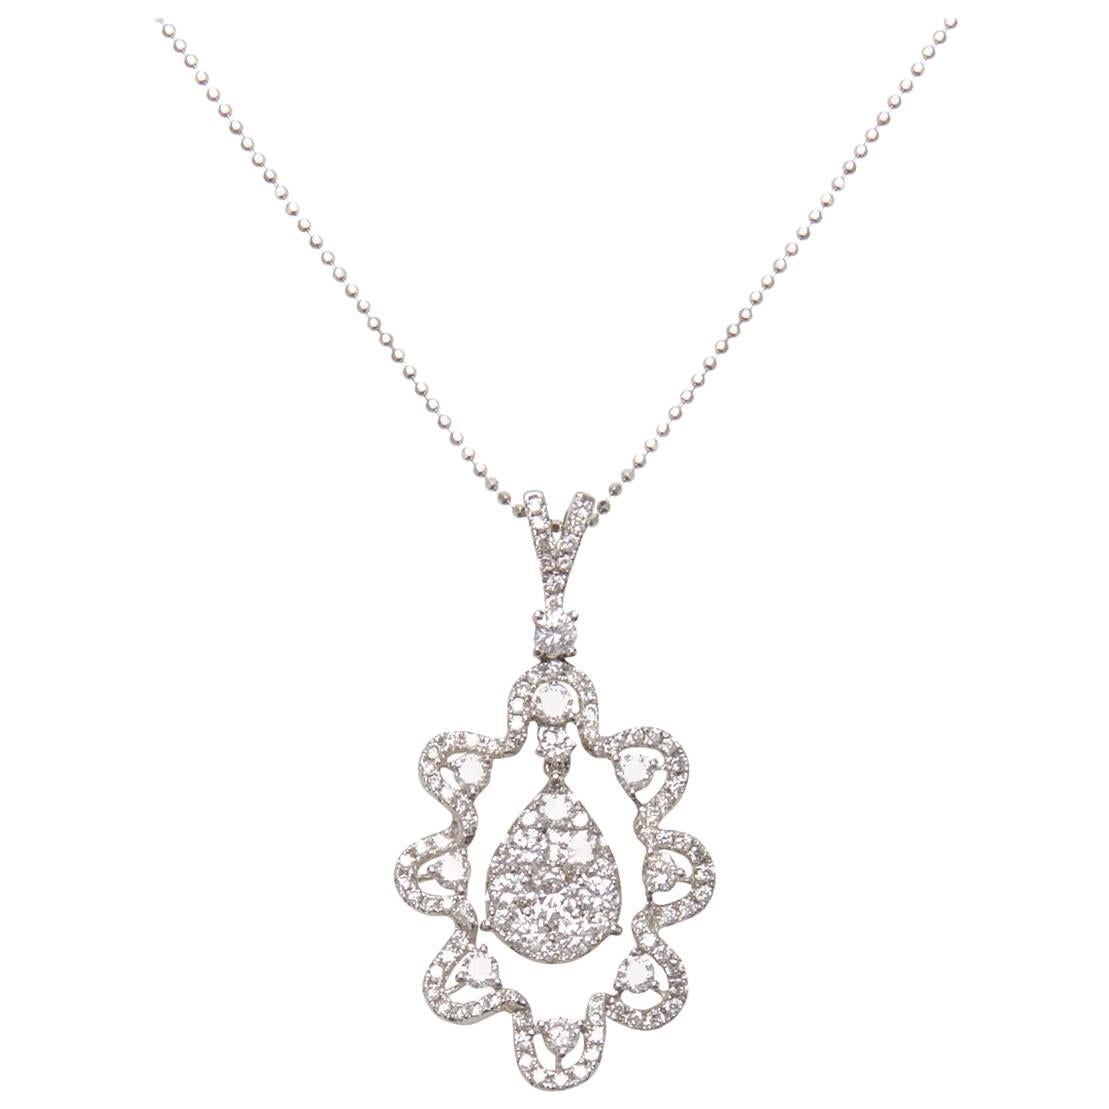 Long Diamond Pendant Necklace